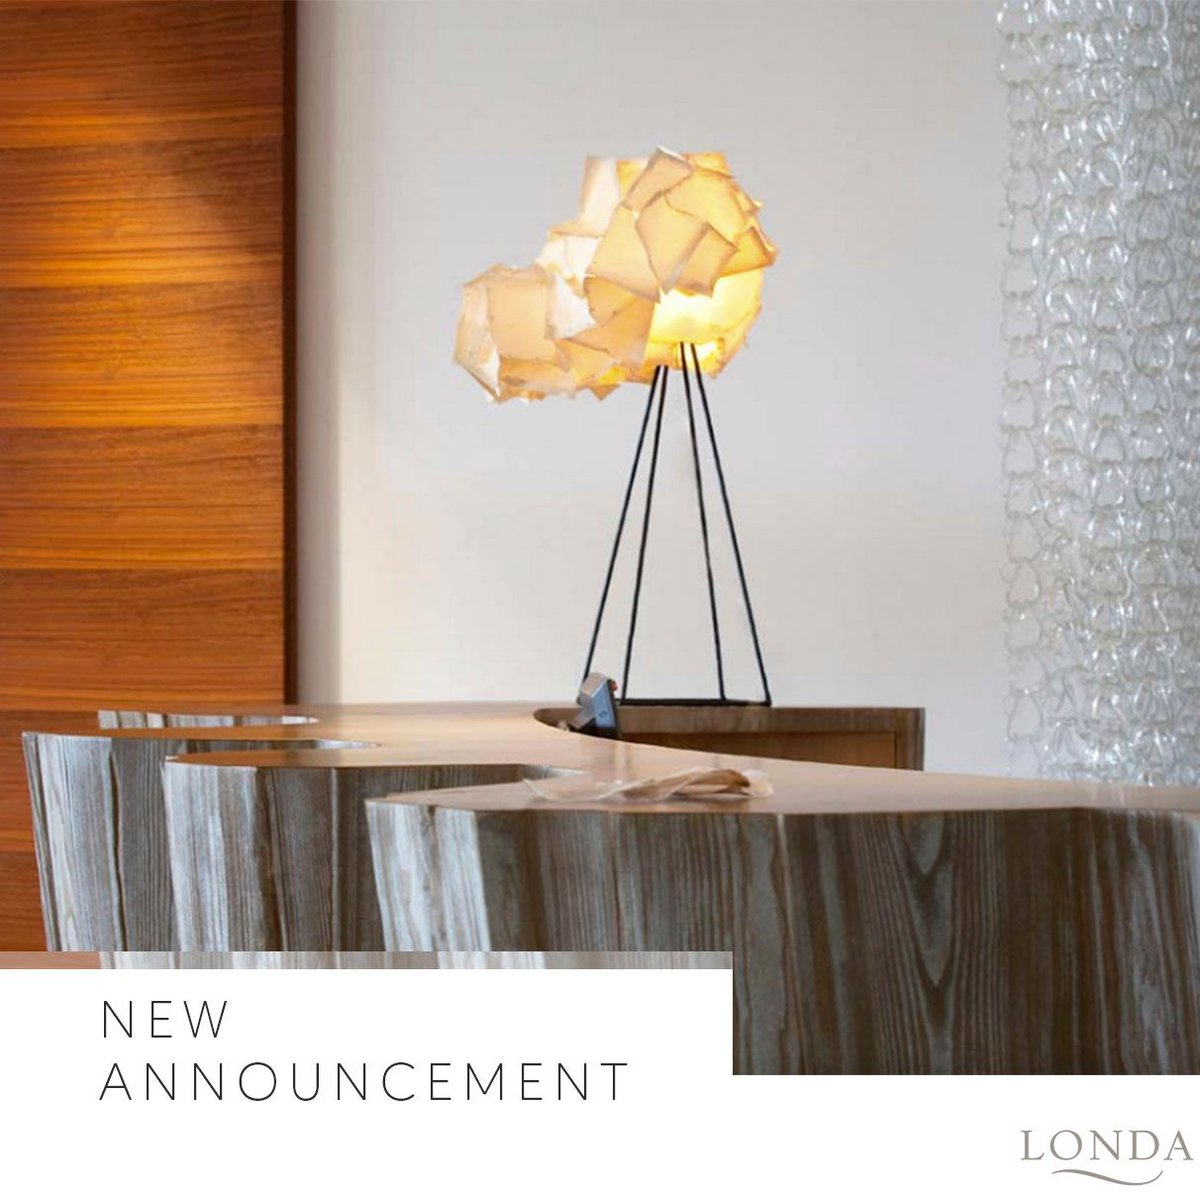 Dear friends, the green light has been given for hotels, yet we prefer to keep the measurements for a while longer, just until the whole situation stabilizes!! So, your beloved #LondaHotel will remain closed for the time being! Thank you so much for your understanding & patience. https://t.co/8uvRpjwCoH